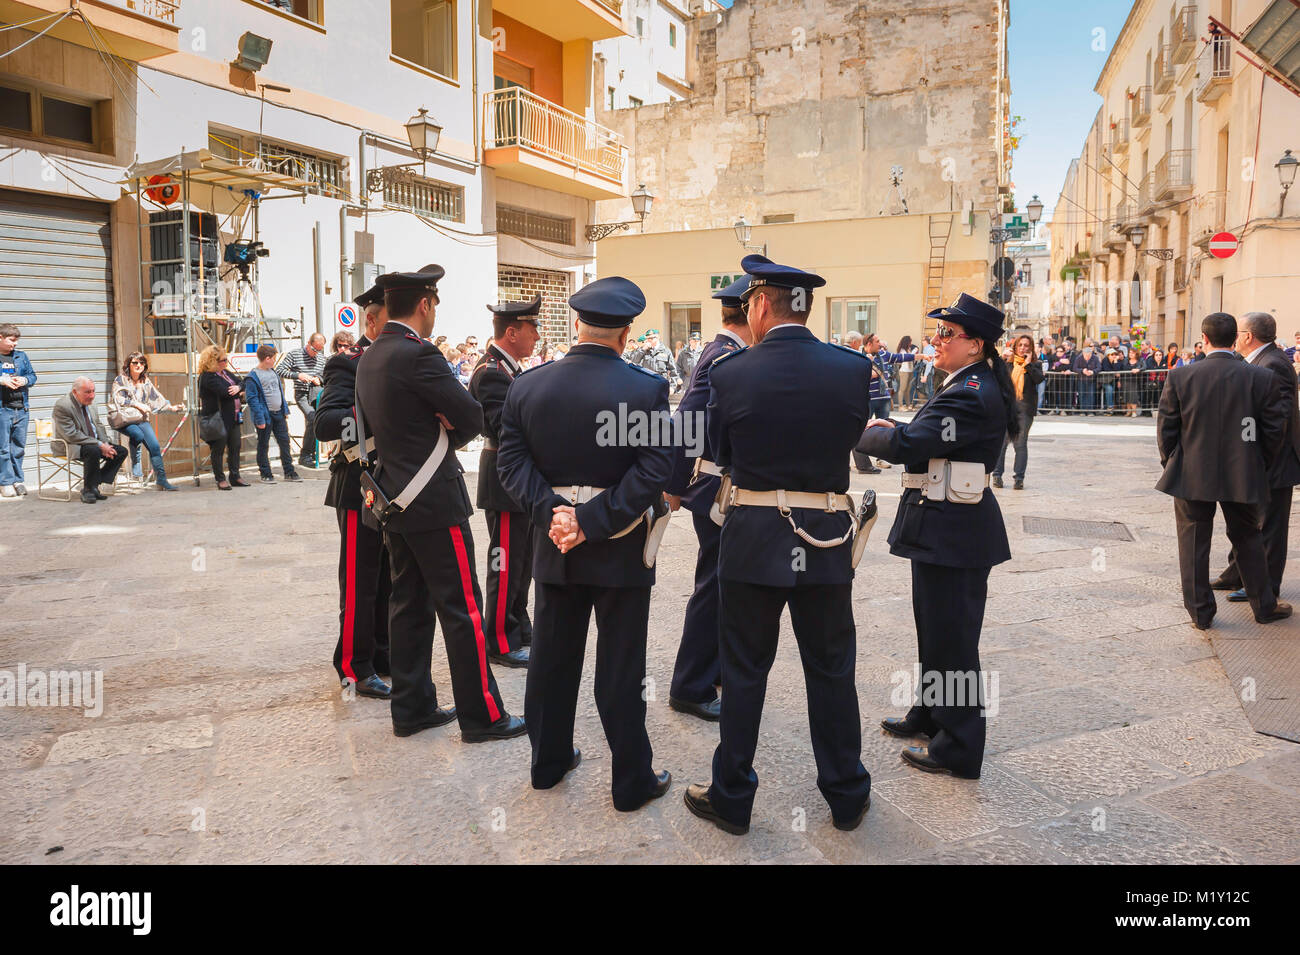 Trapani Easter, a group of Sicilian police officers in Trapani chat prior to the commencement of the Easter Procession - Stock Image